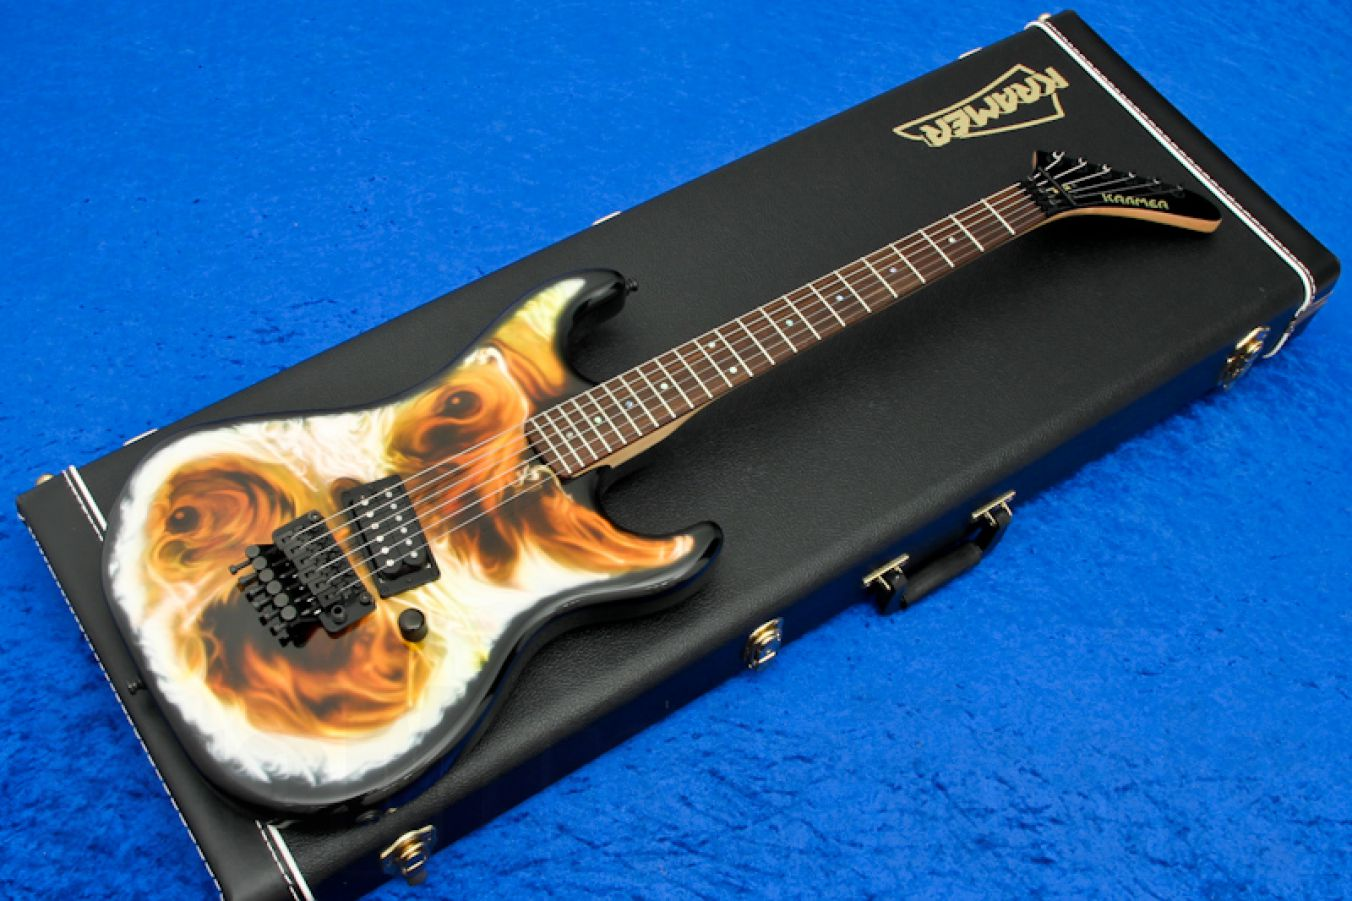 Kramer Baretta 1985 USA Reissue - Custom 'Nightmare' graphics